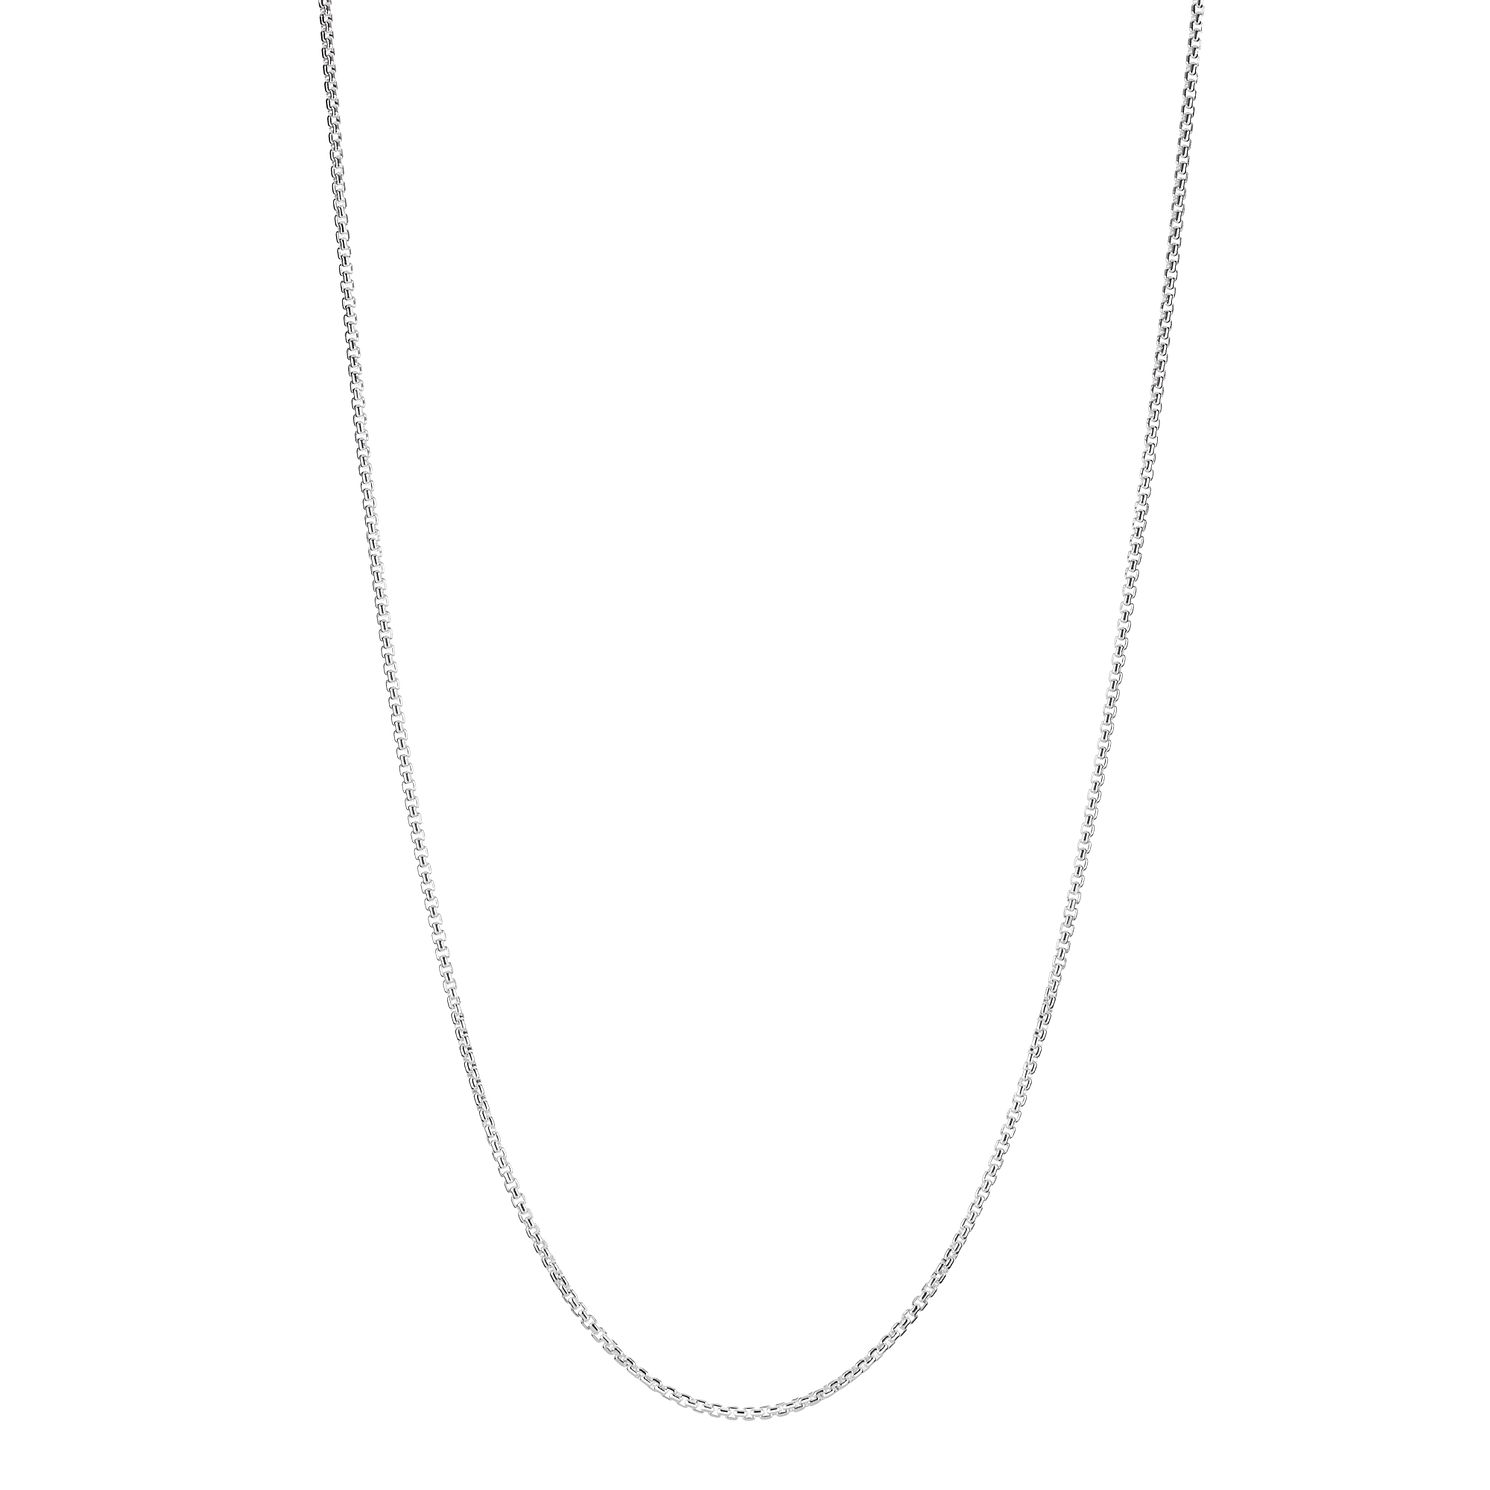 Chamilia Petite Silver Box Chain Necklace - Product number 2217937